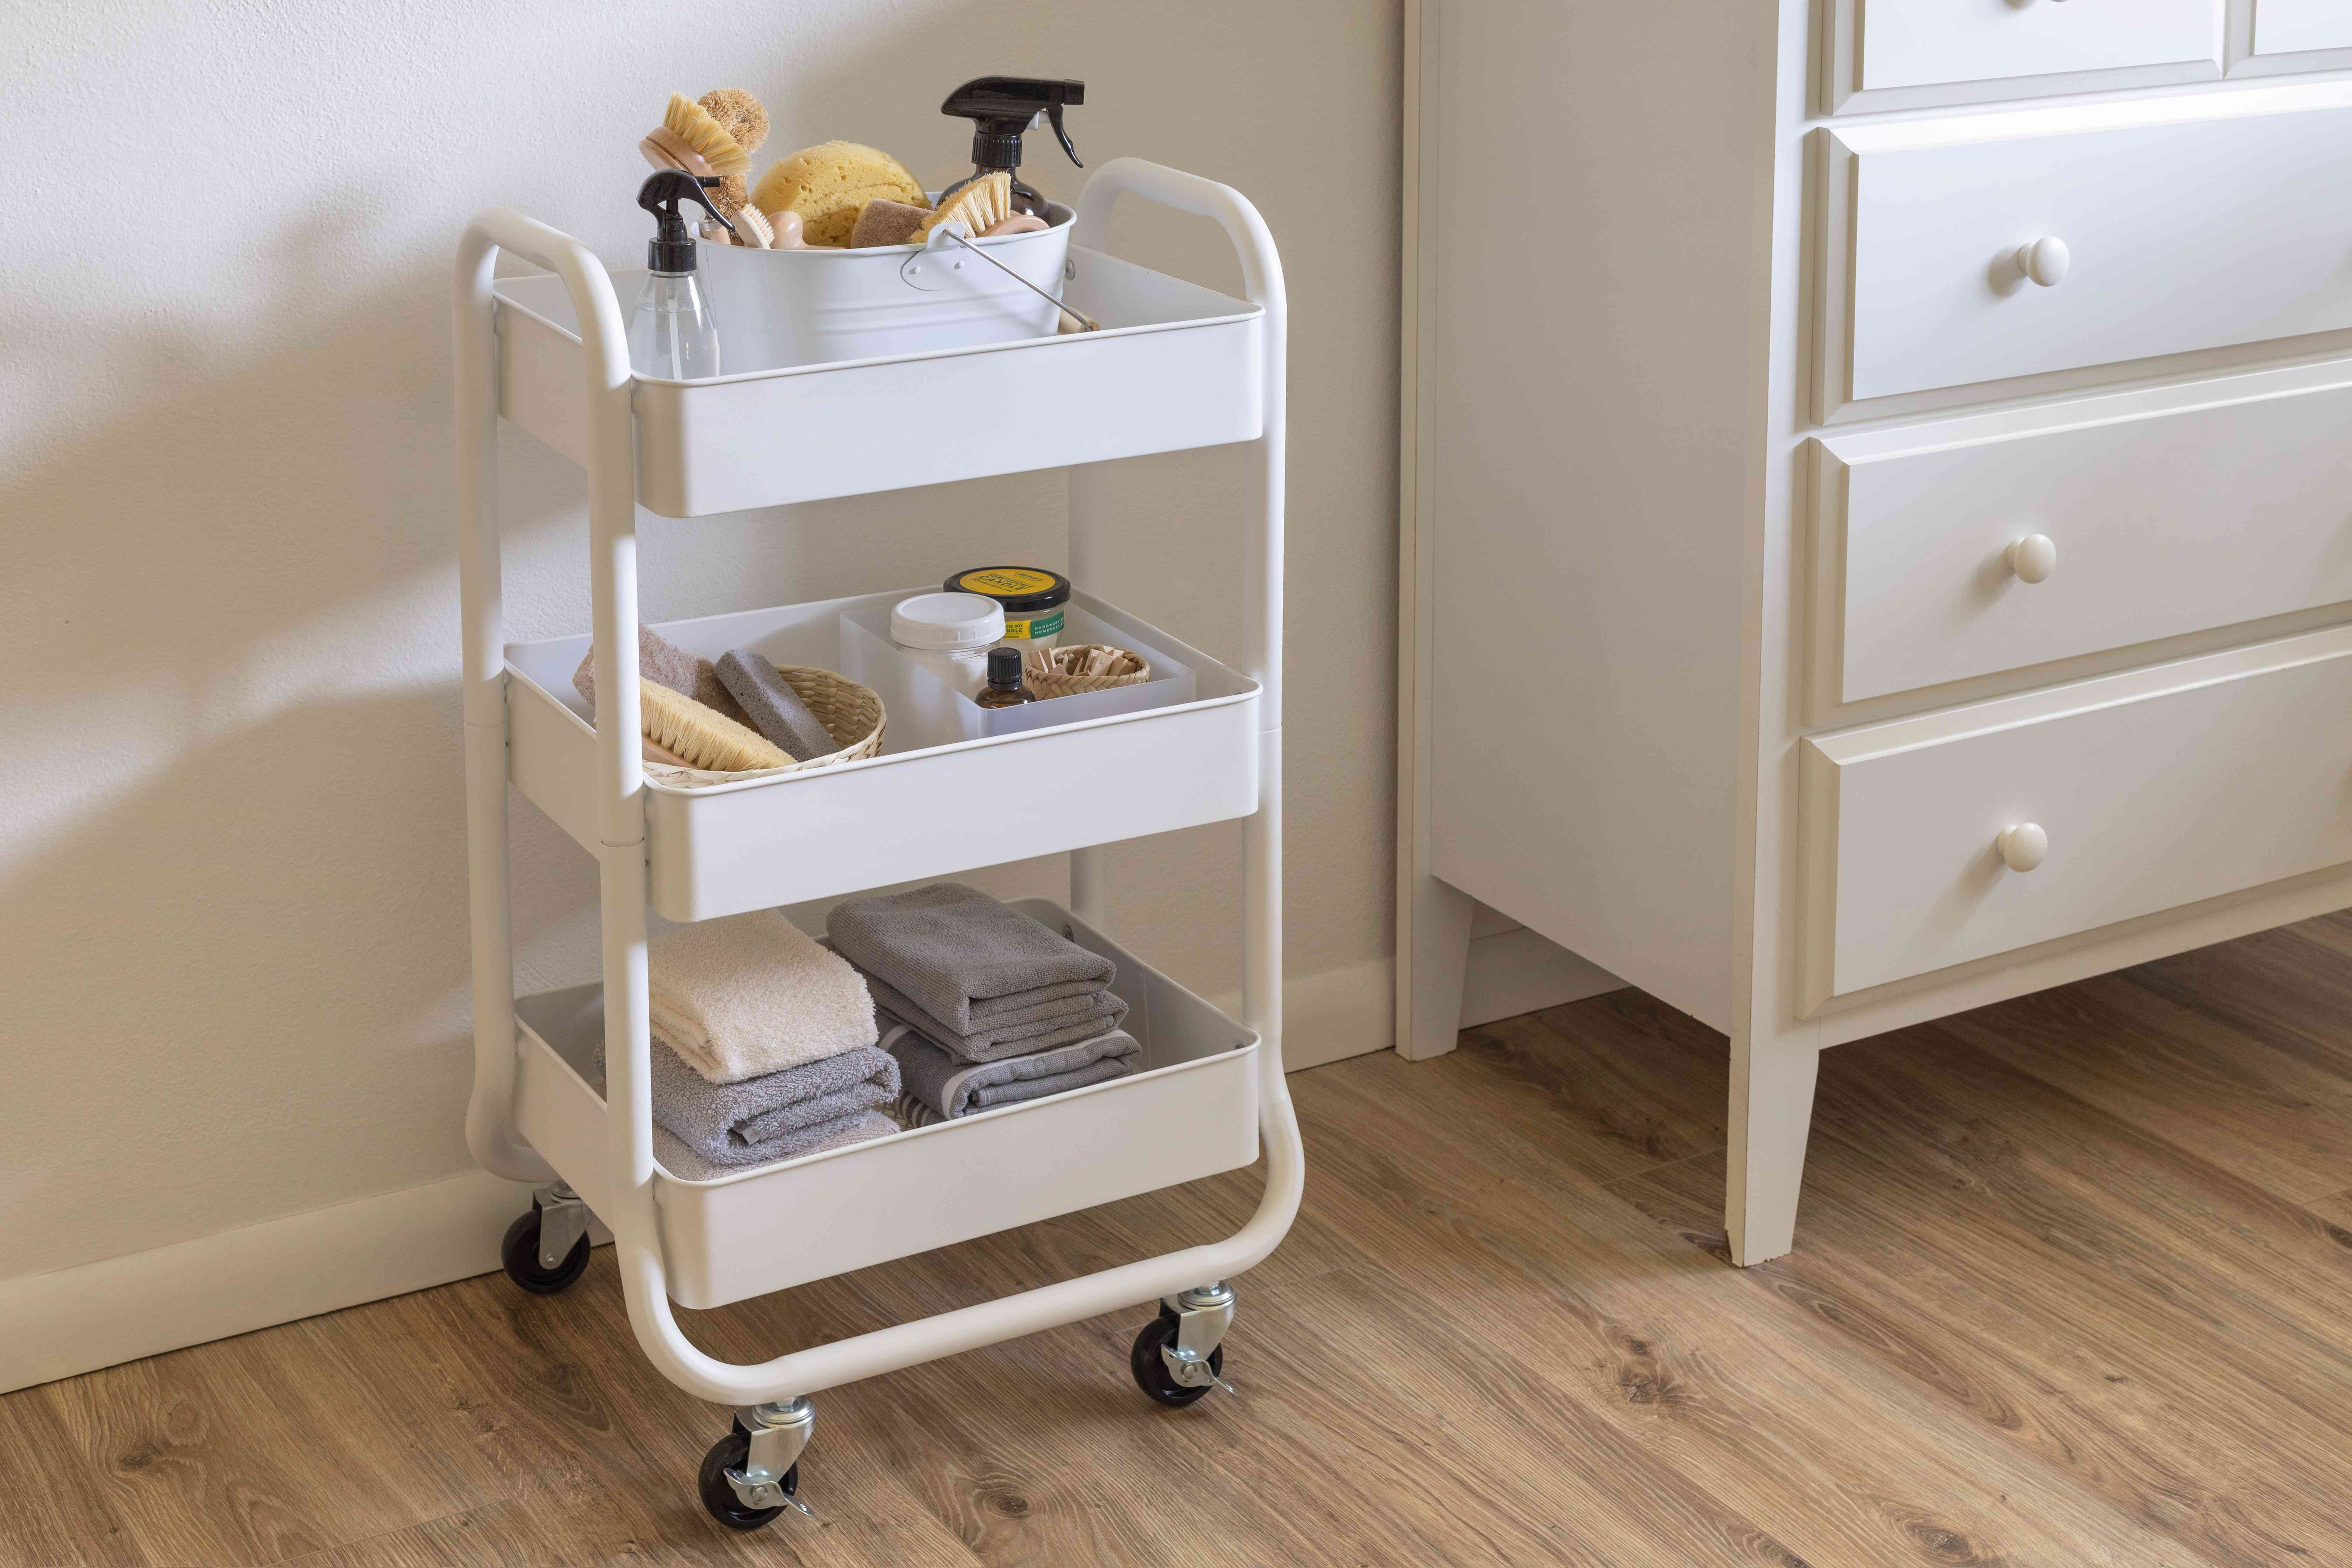 Moveable cart with wheels storing folded towels and cleaning supplies